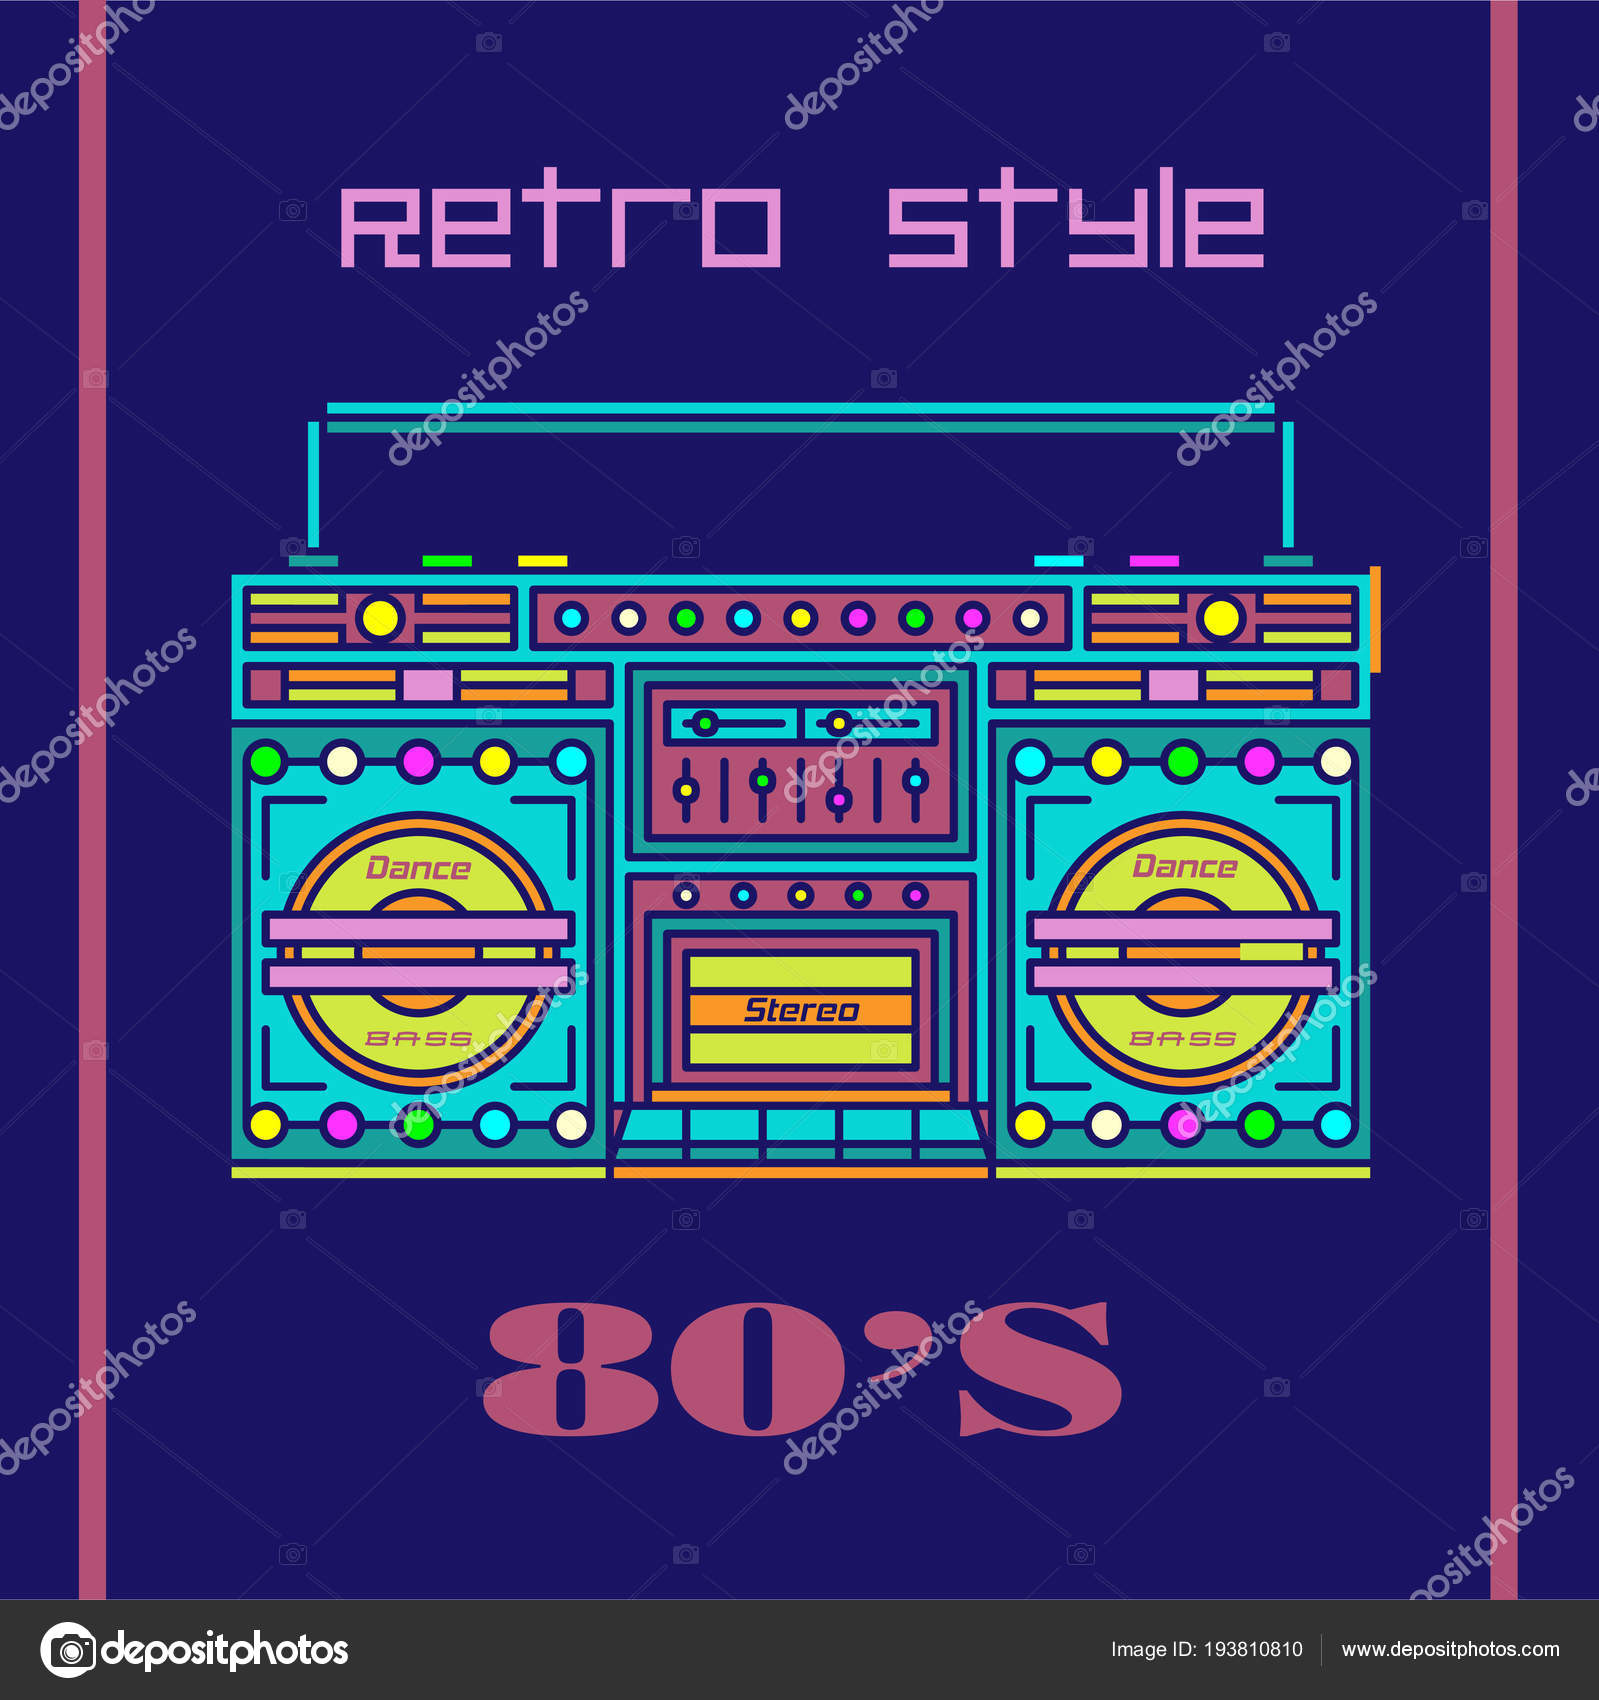 80s Poster Music Poster Vintage Wall Art Wall Art 90s Poster Nostalgic Poster Retro Poster Nostalgia Cassette Tape Vintage Poster